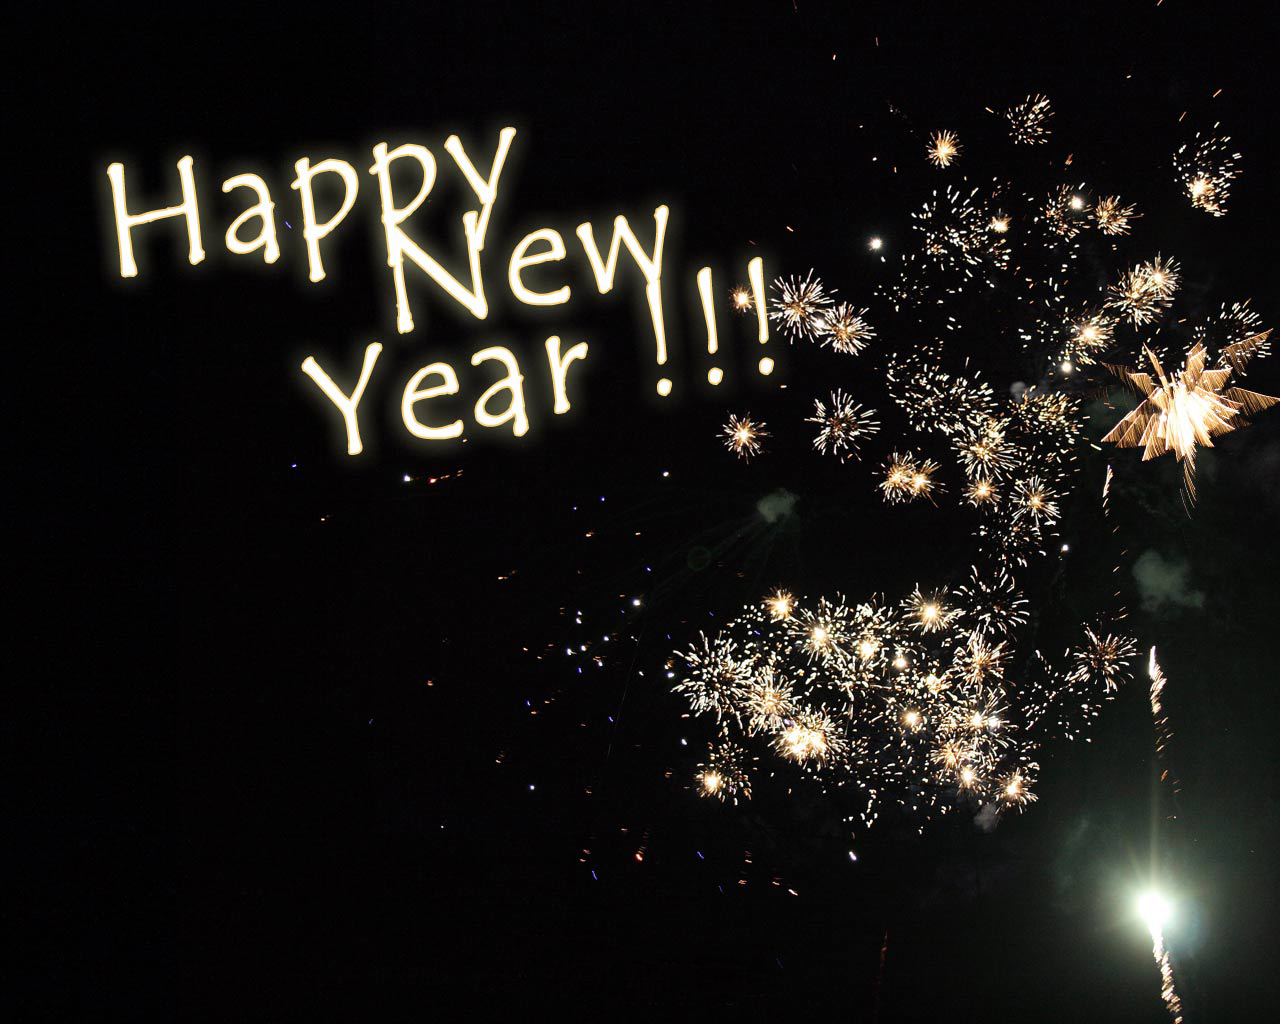 Free download happy new year wallpapers and images [1280x1024] for